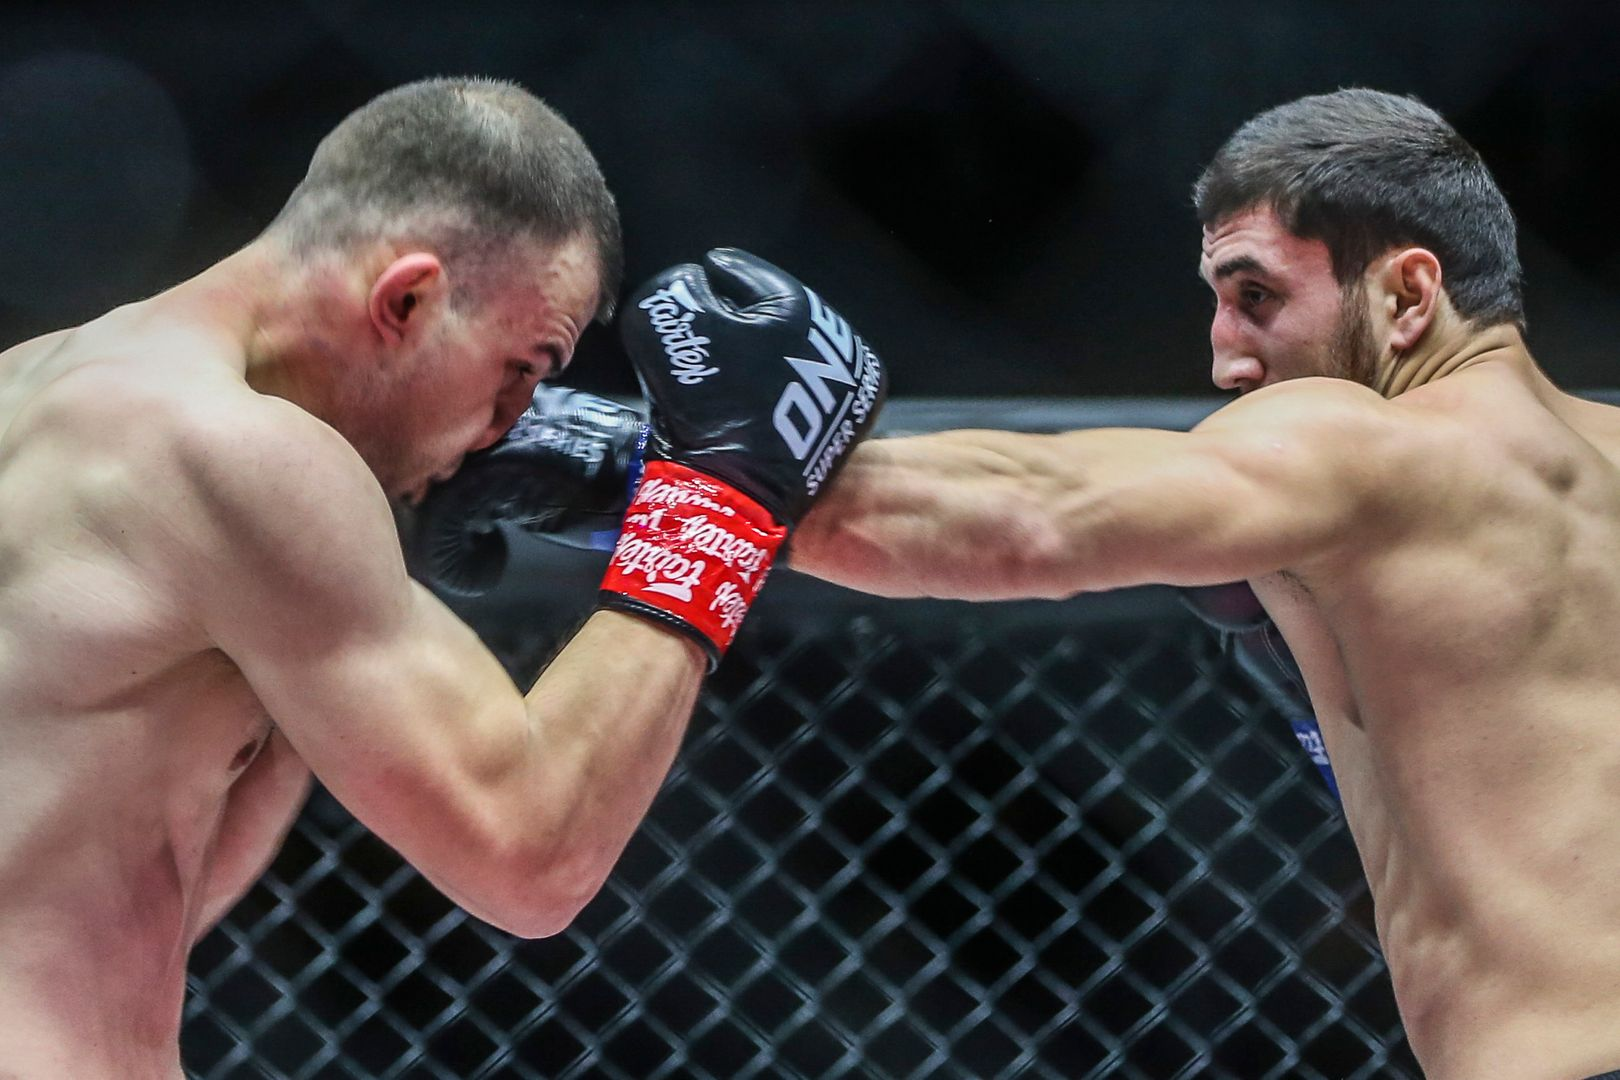 Light heavyweight kickboxers Mihajlo Kecojevic and Beybulat Isaev fight at ONE: UNBREAKABLE II in January 2021